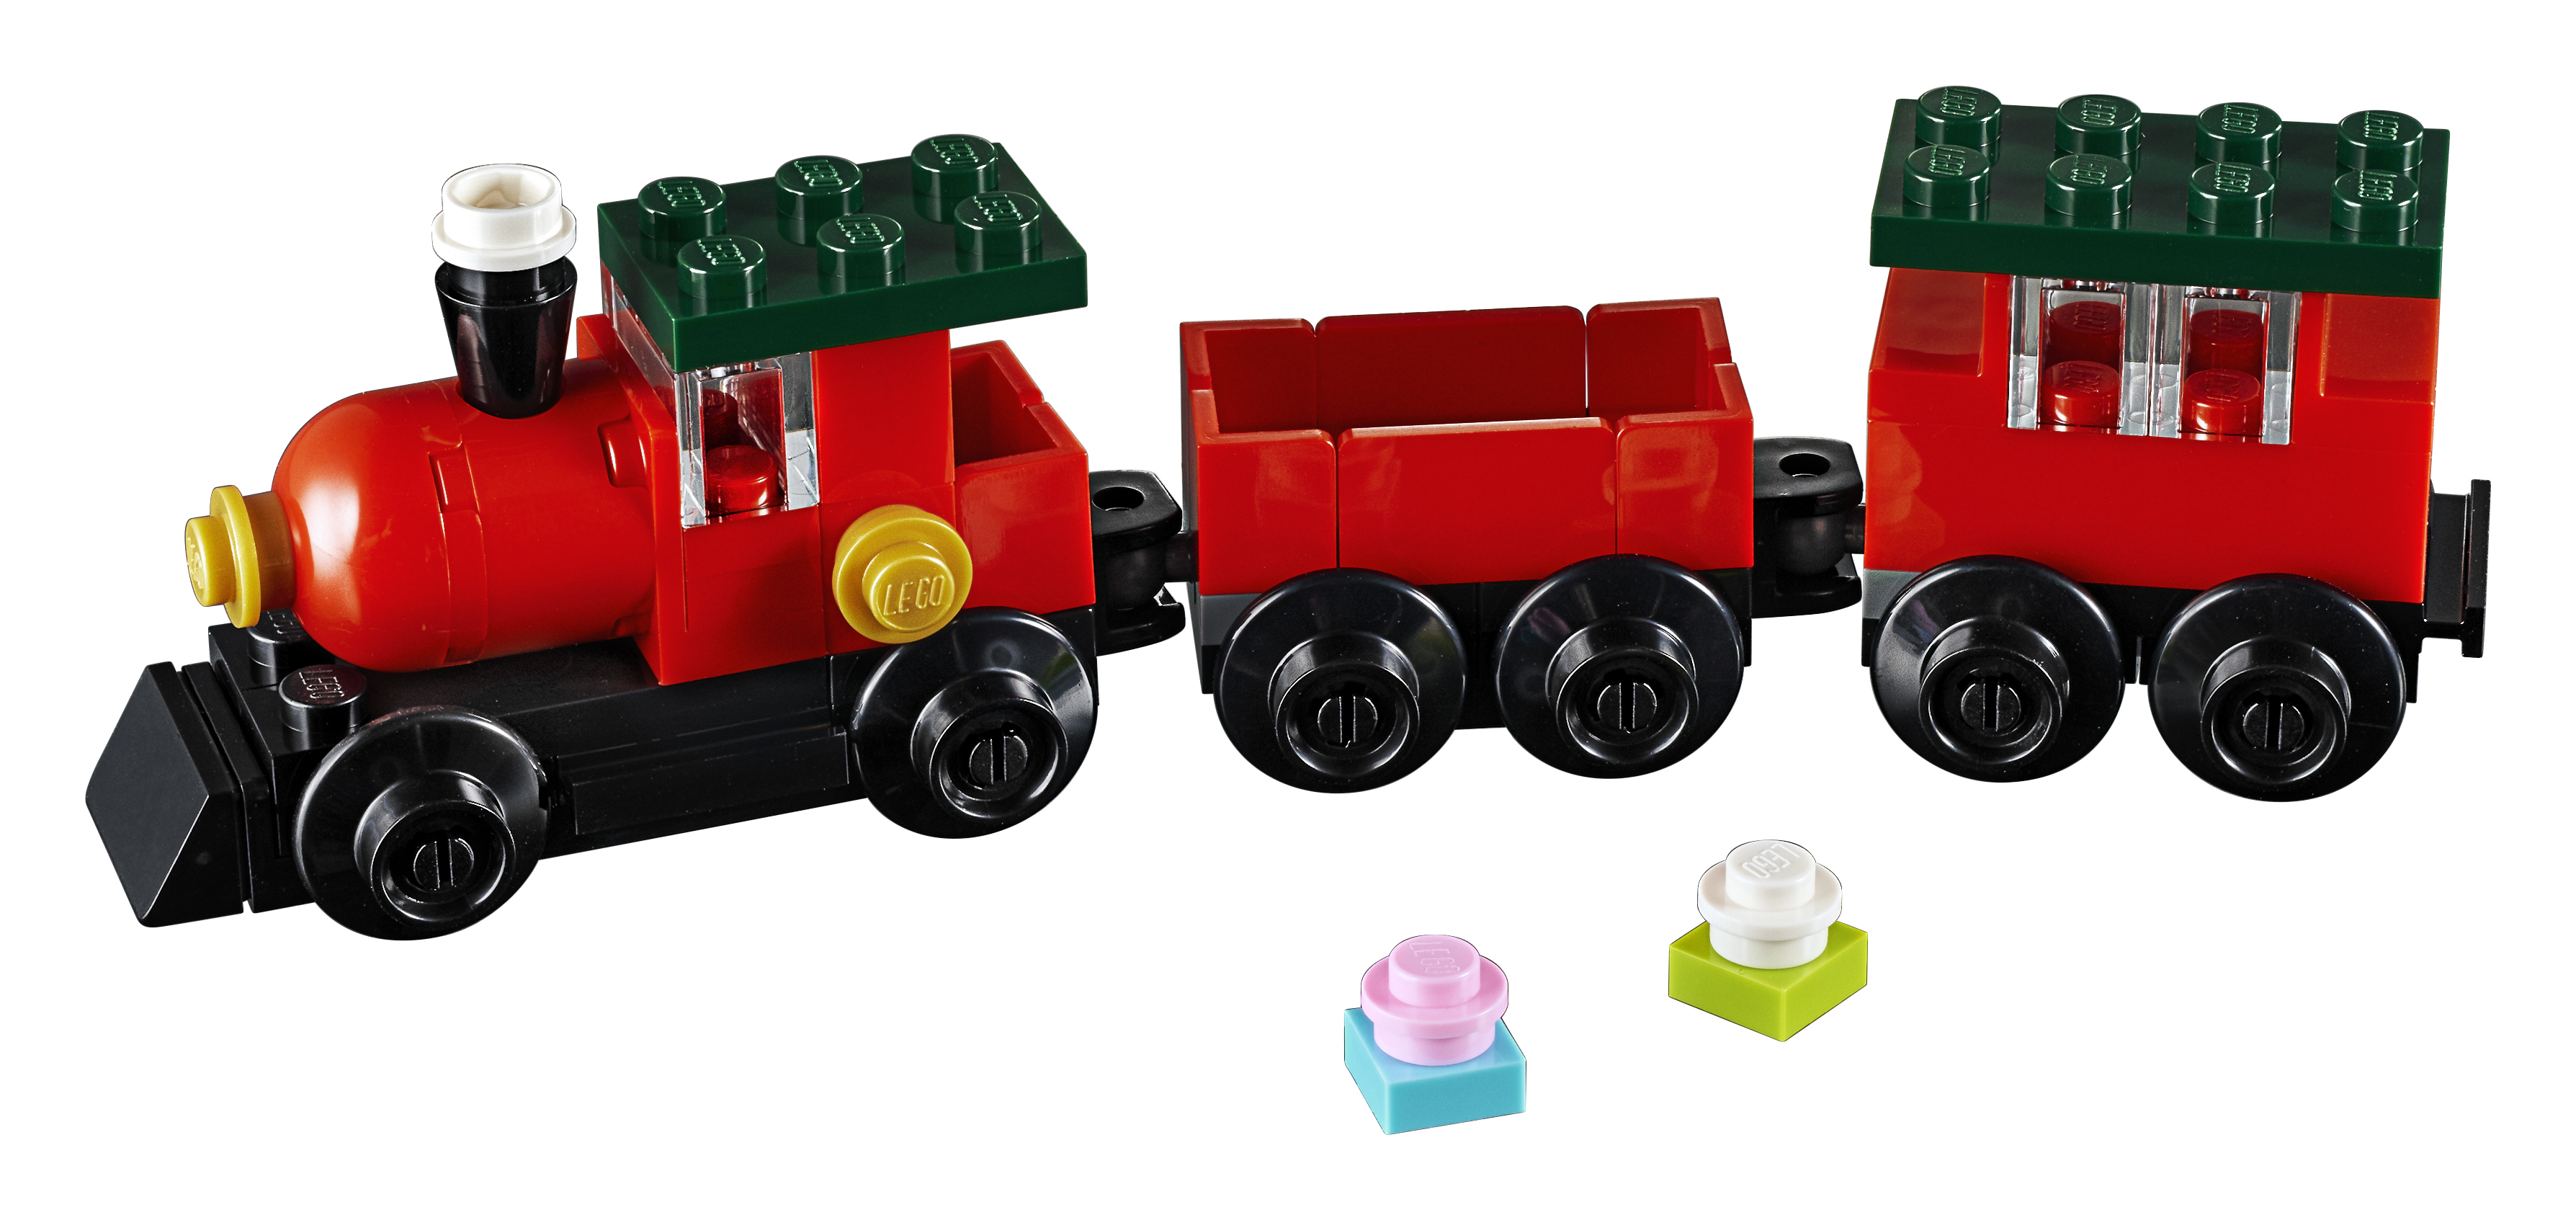 LEGO Creator Holiday Train 30543 Polybag (66 Pieces)